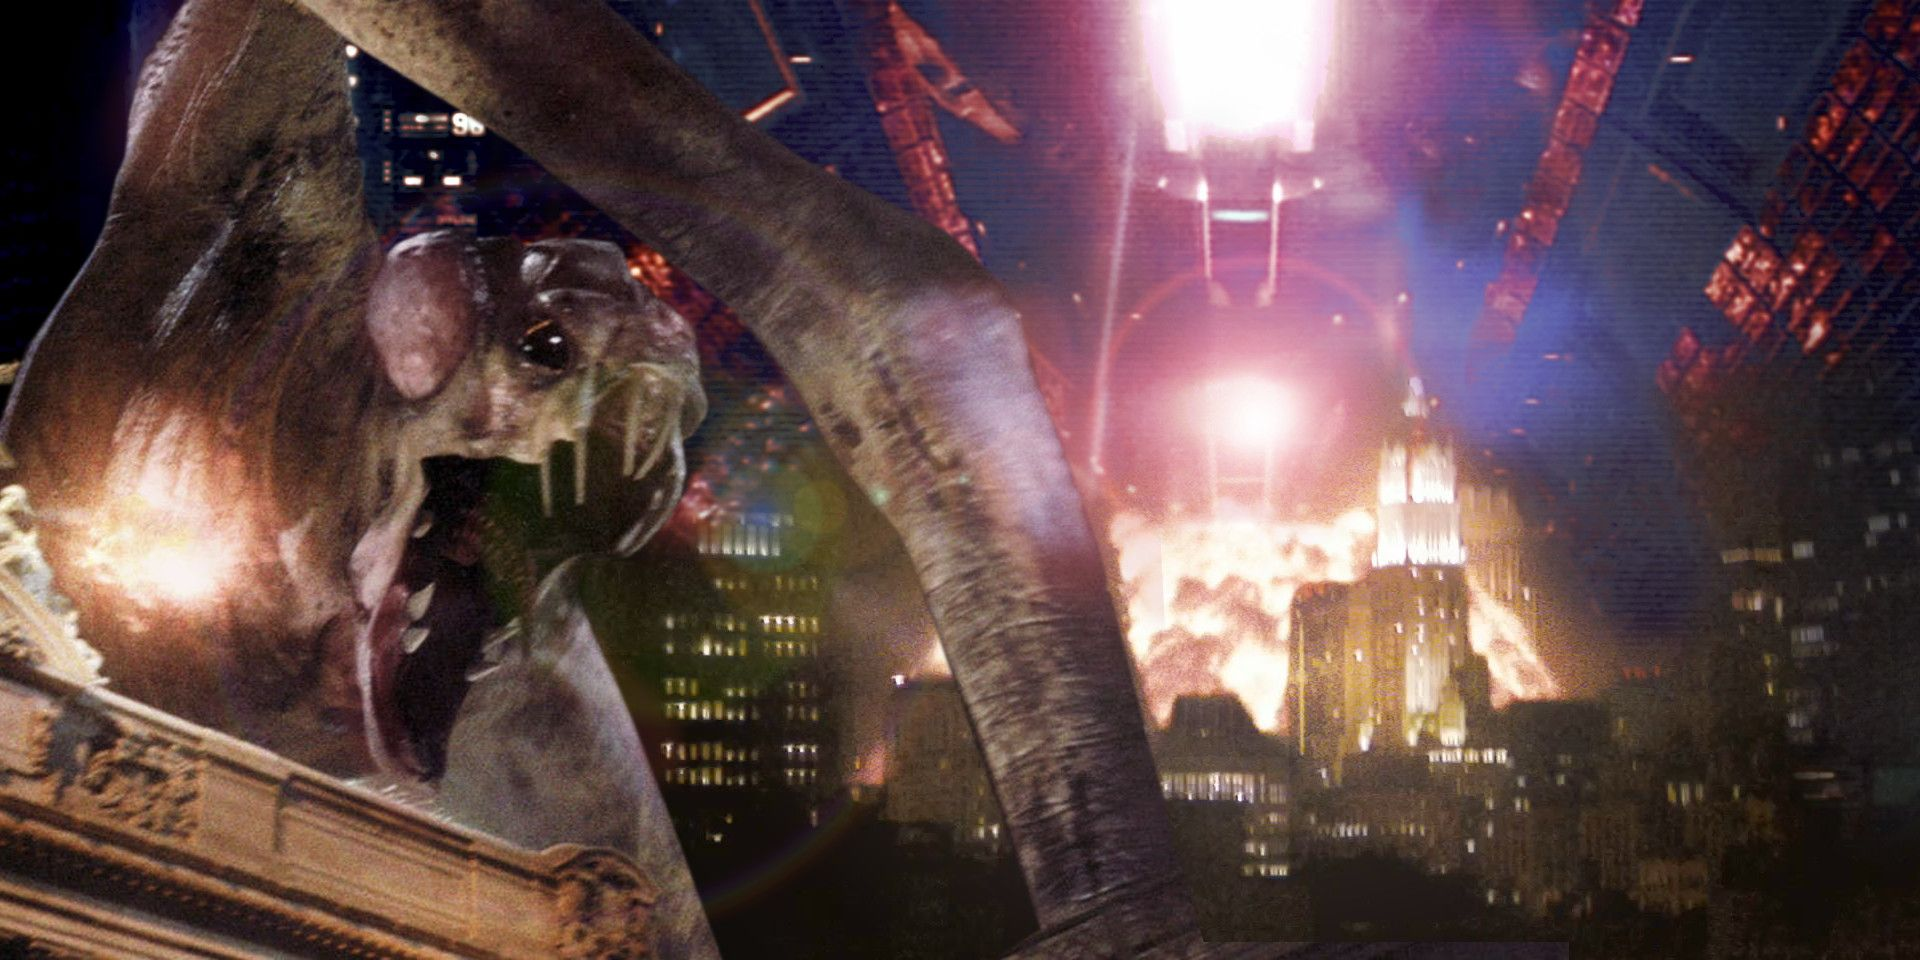 Cloverfield/Paradox Sync Up Doesn't Work | ScreenRant